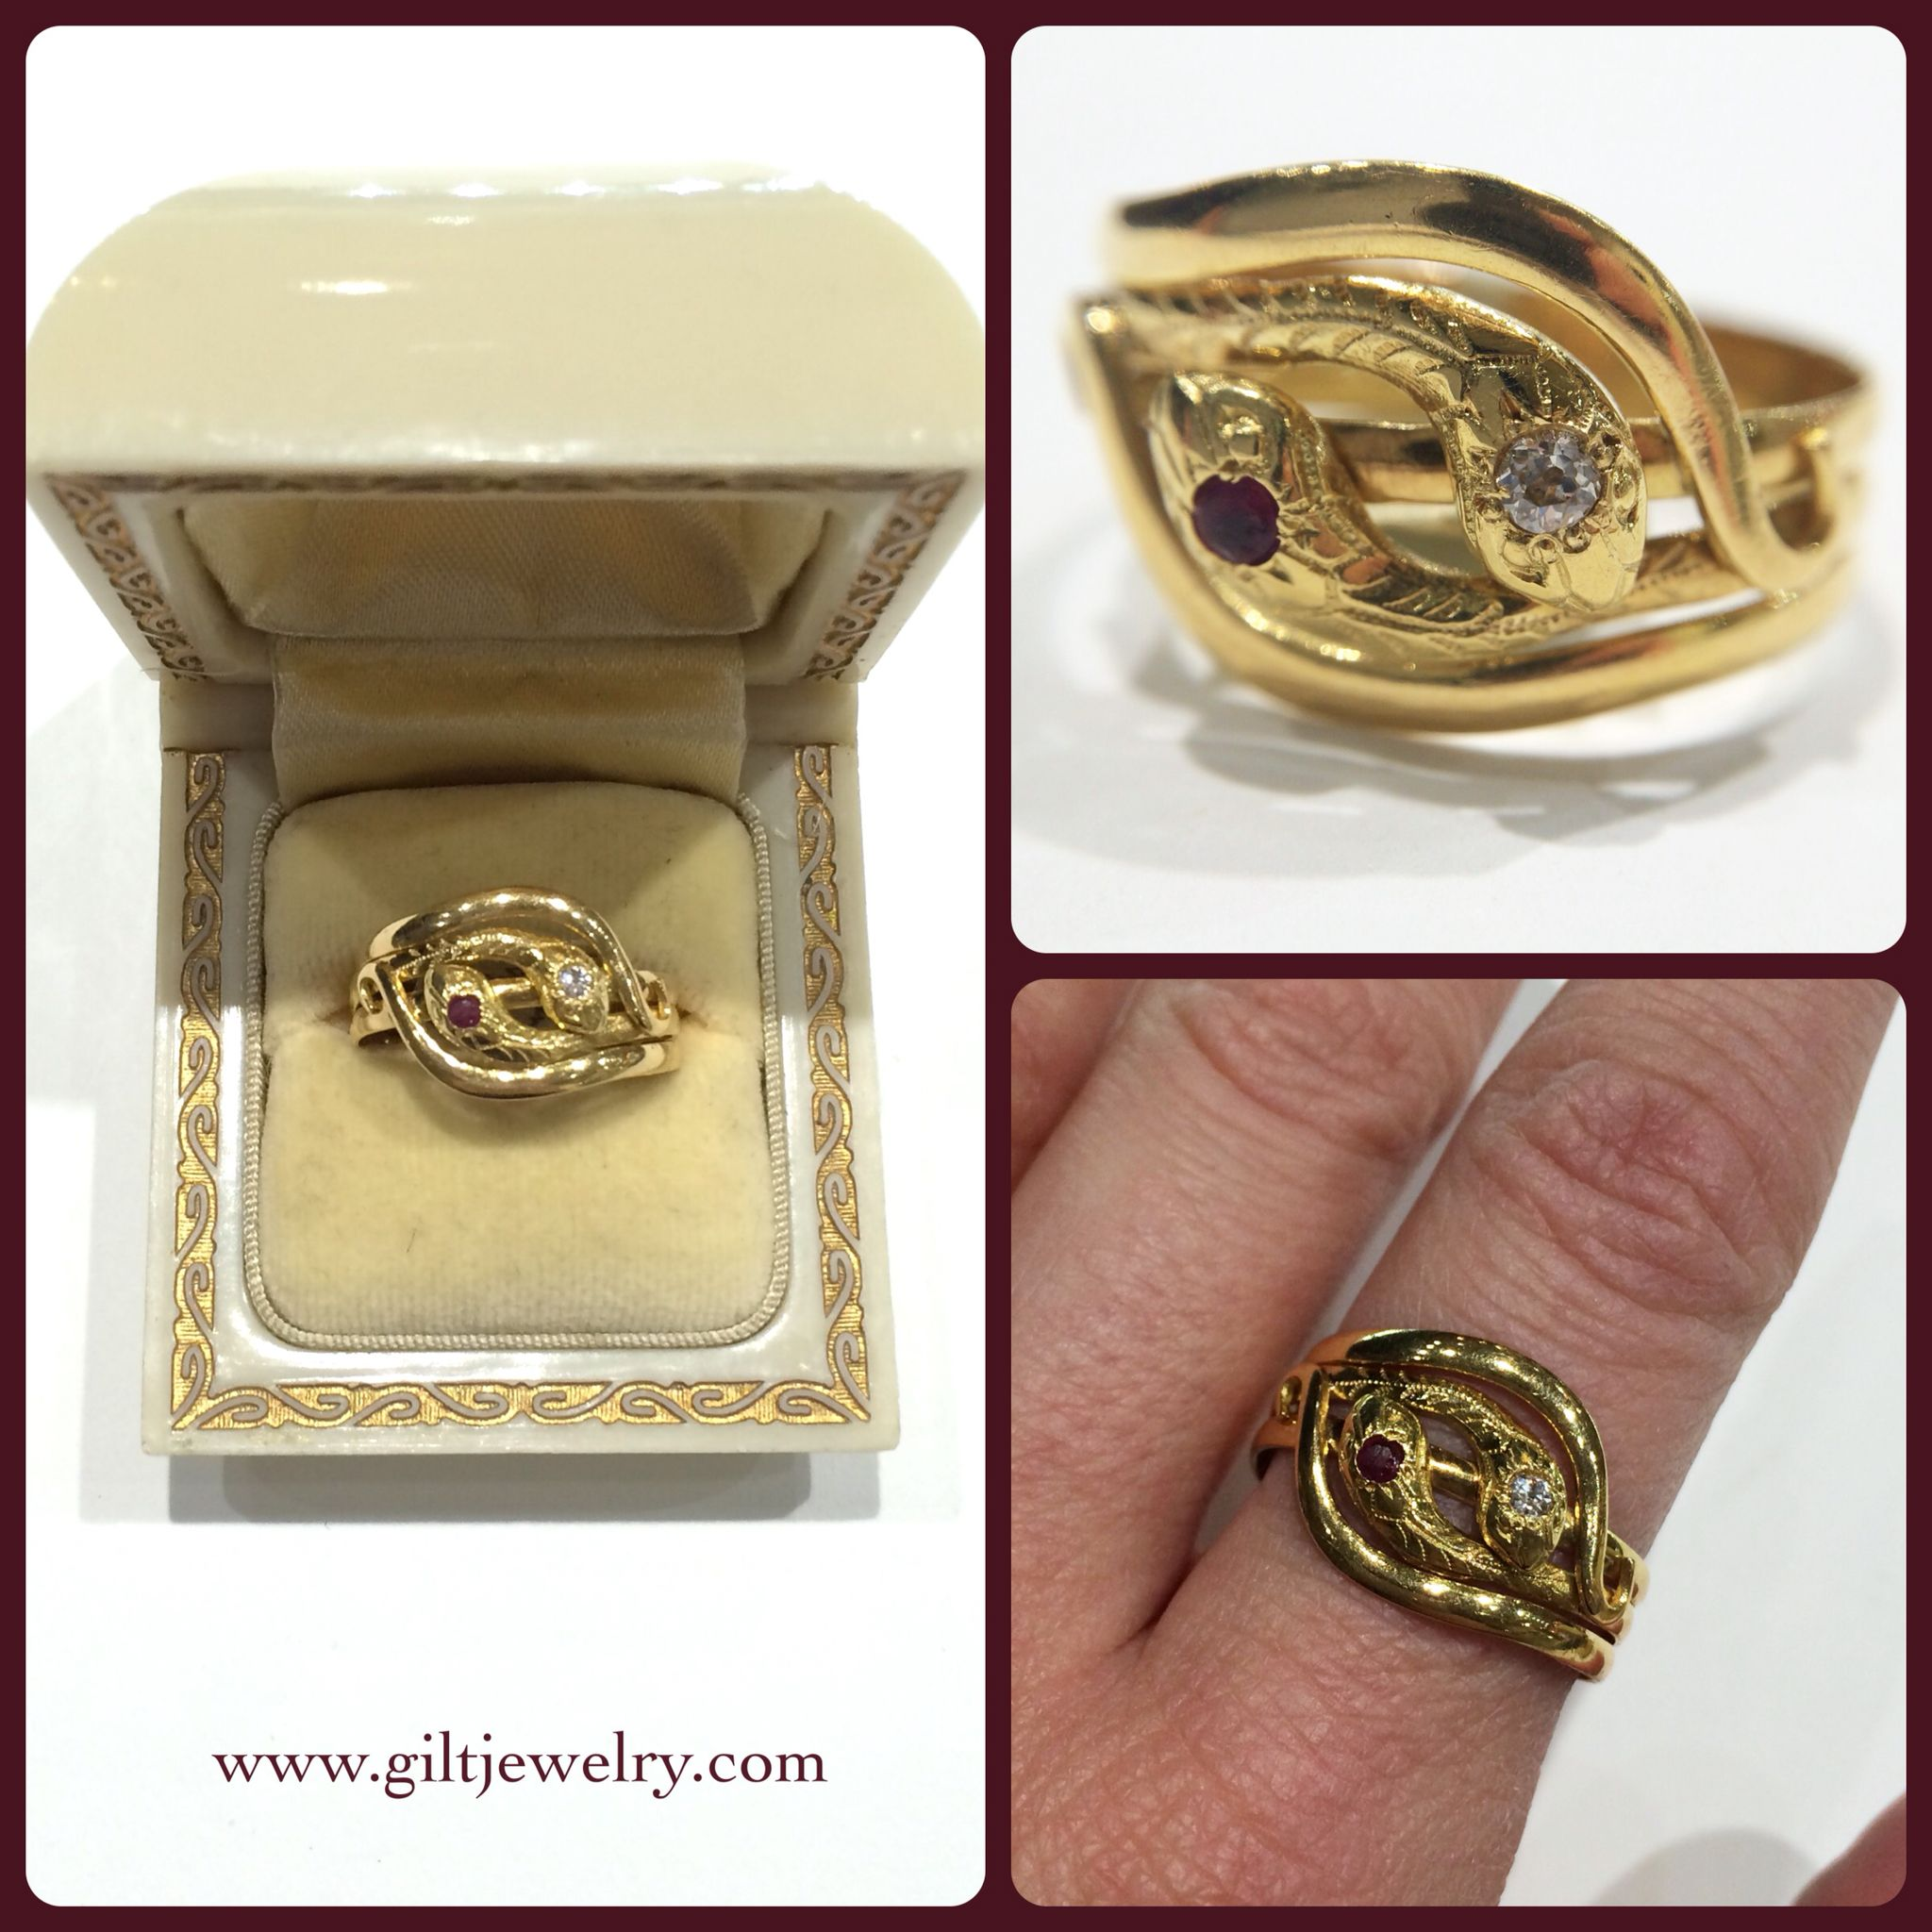 org j three antique rings edwardian diamond jewelry carat serpent dated id ring at for stone sale box gold